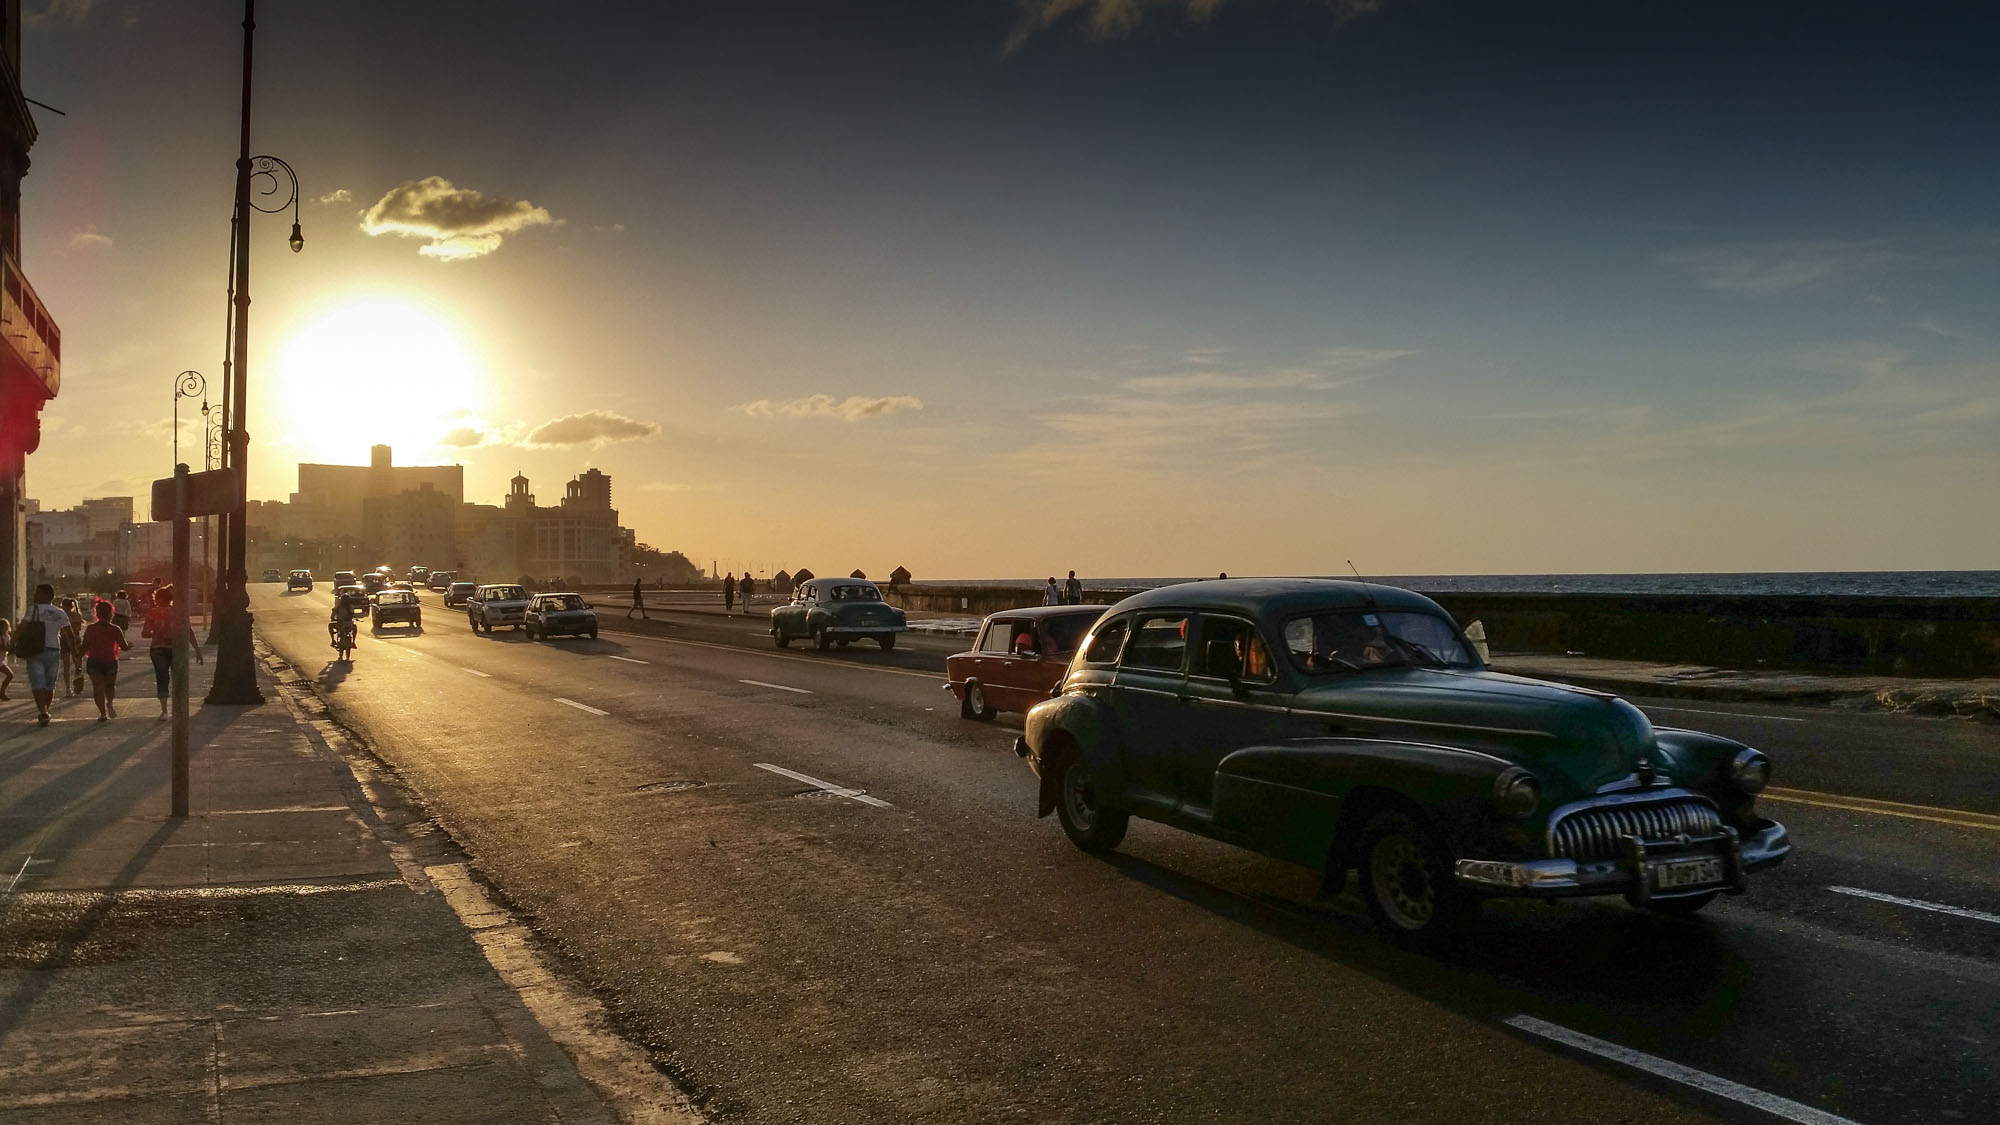 Late afternoon on the Malecon, the seaside boulevard of Havana